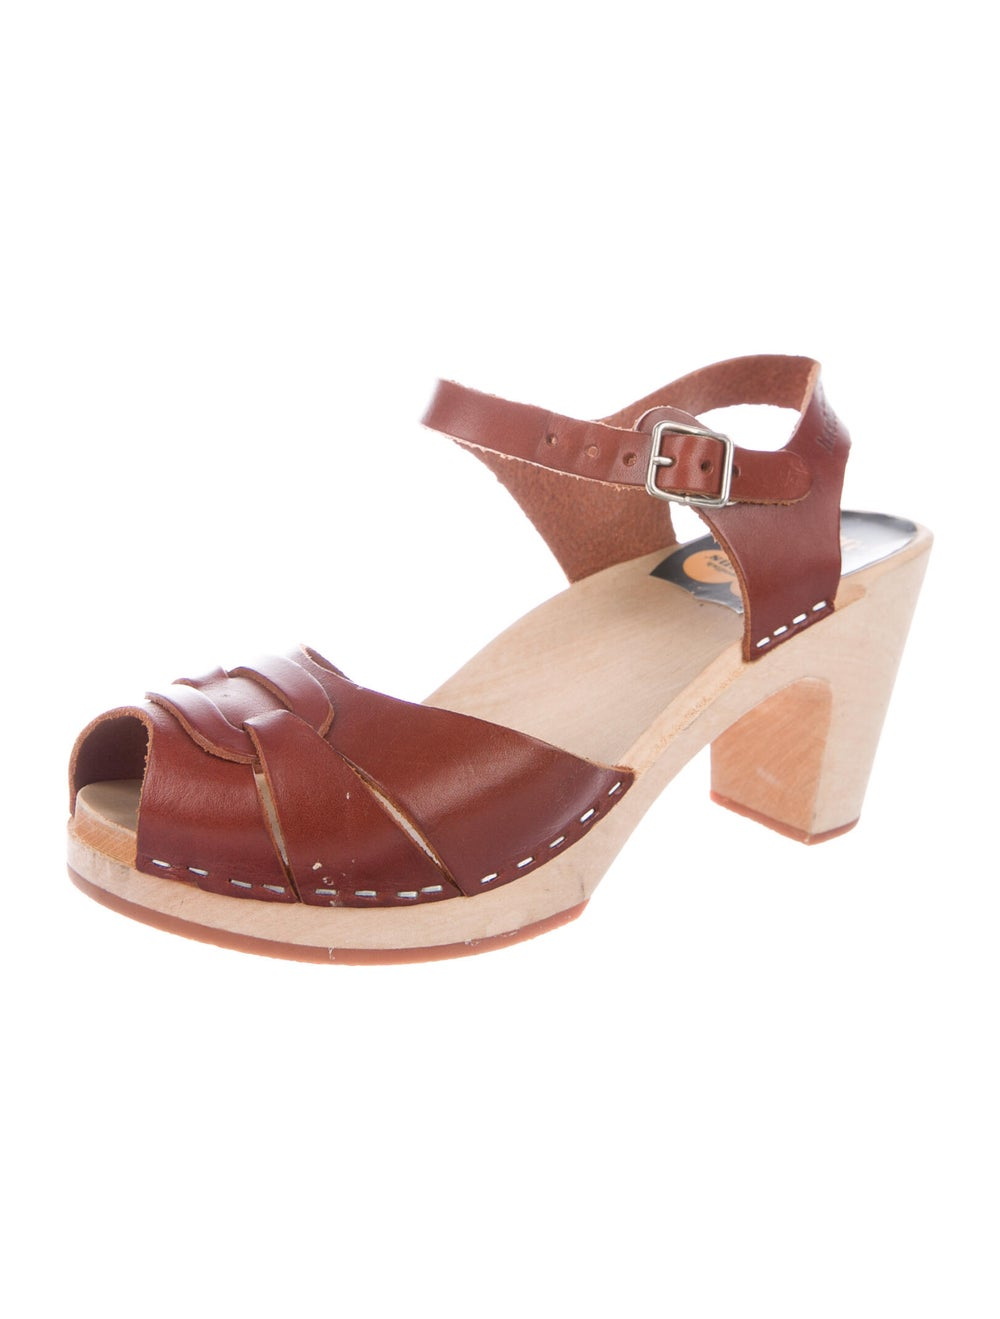 Swedish Hasbeens Leather Sandals Brown - image 2